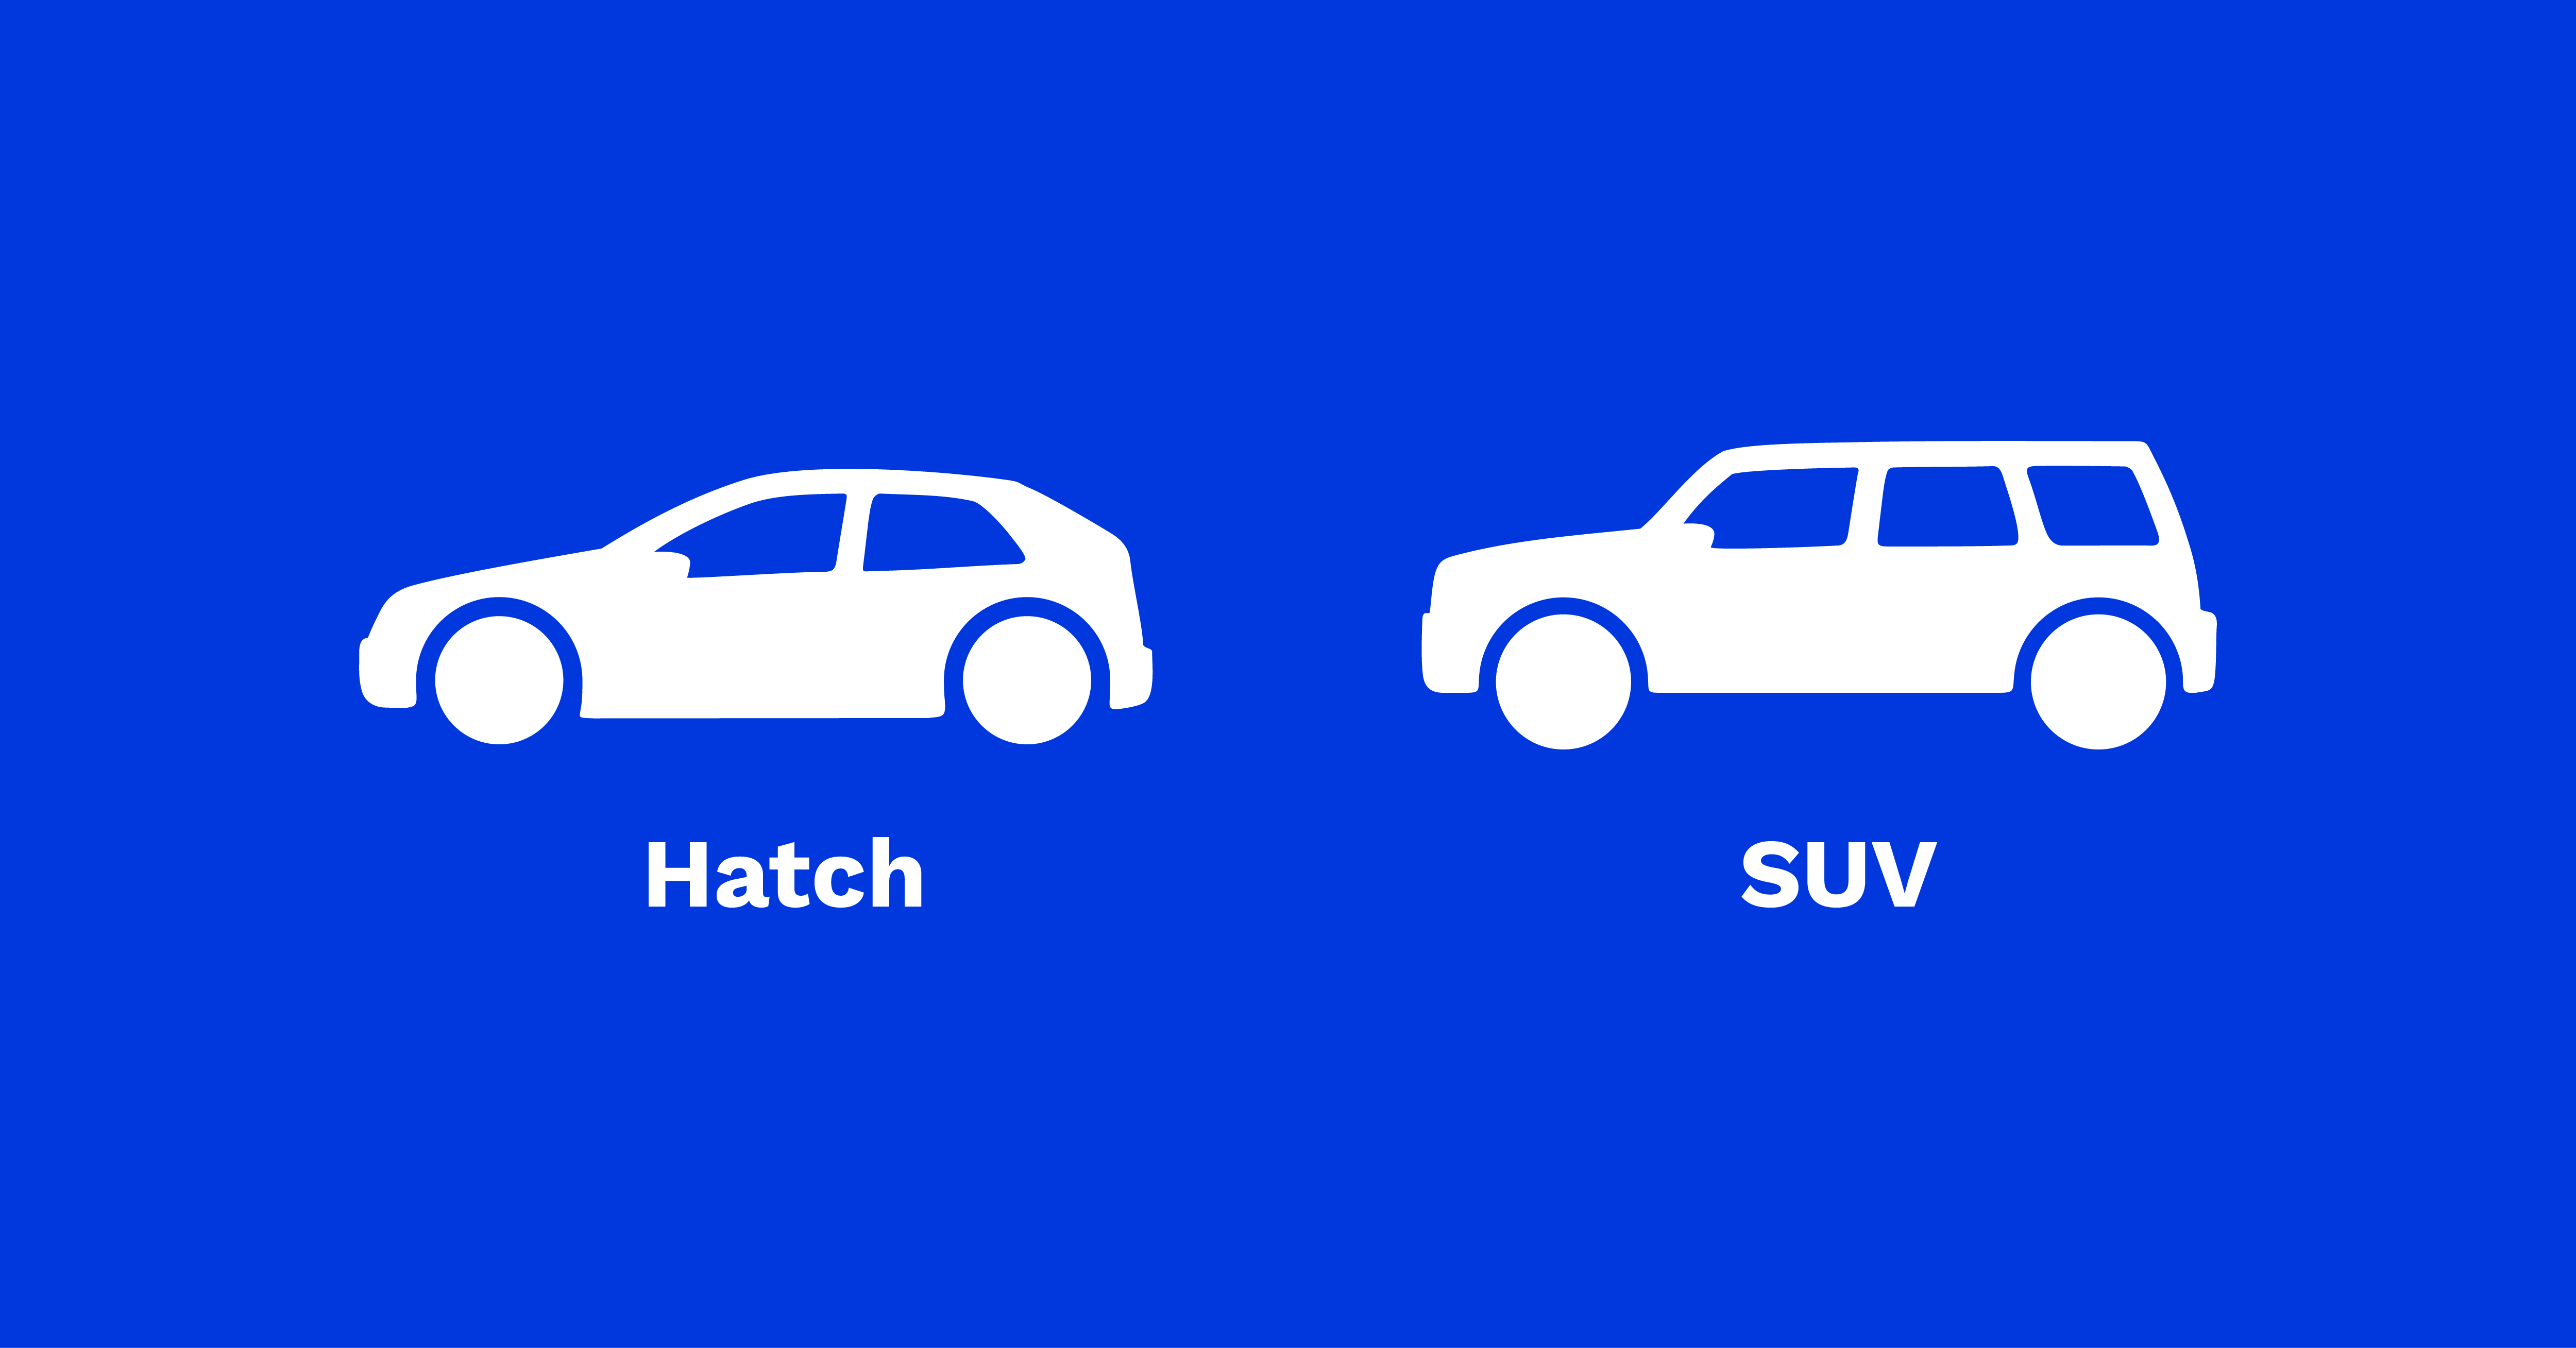 What's better: a SUV or hatchback?